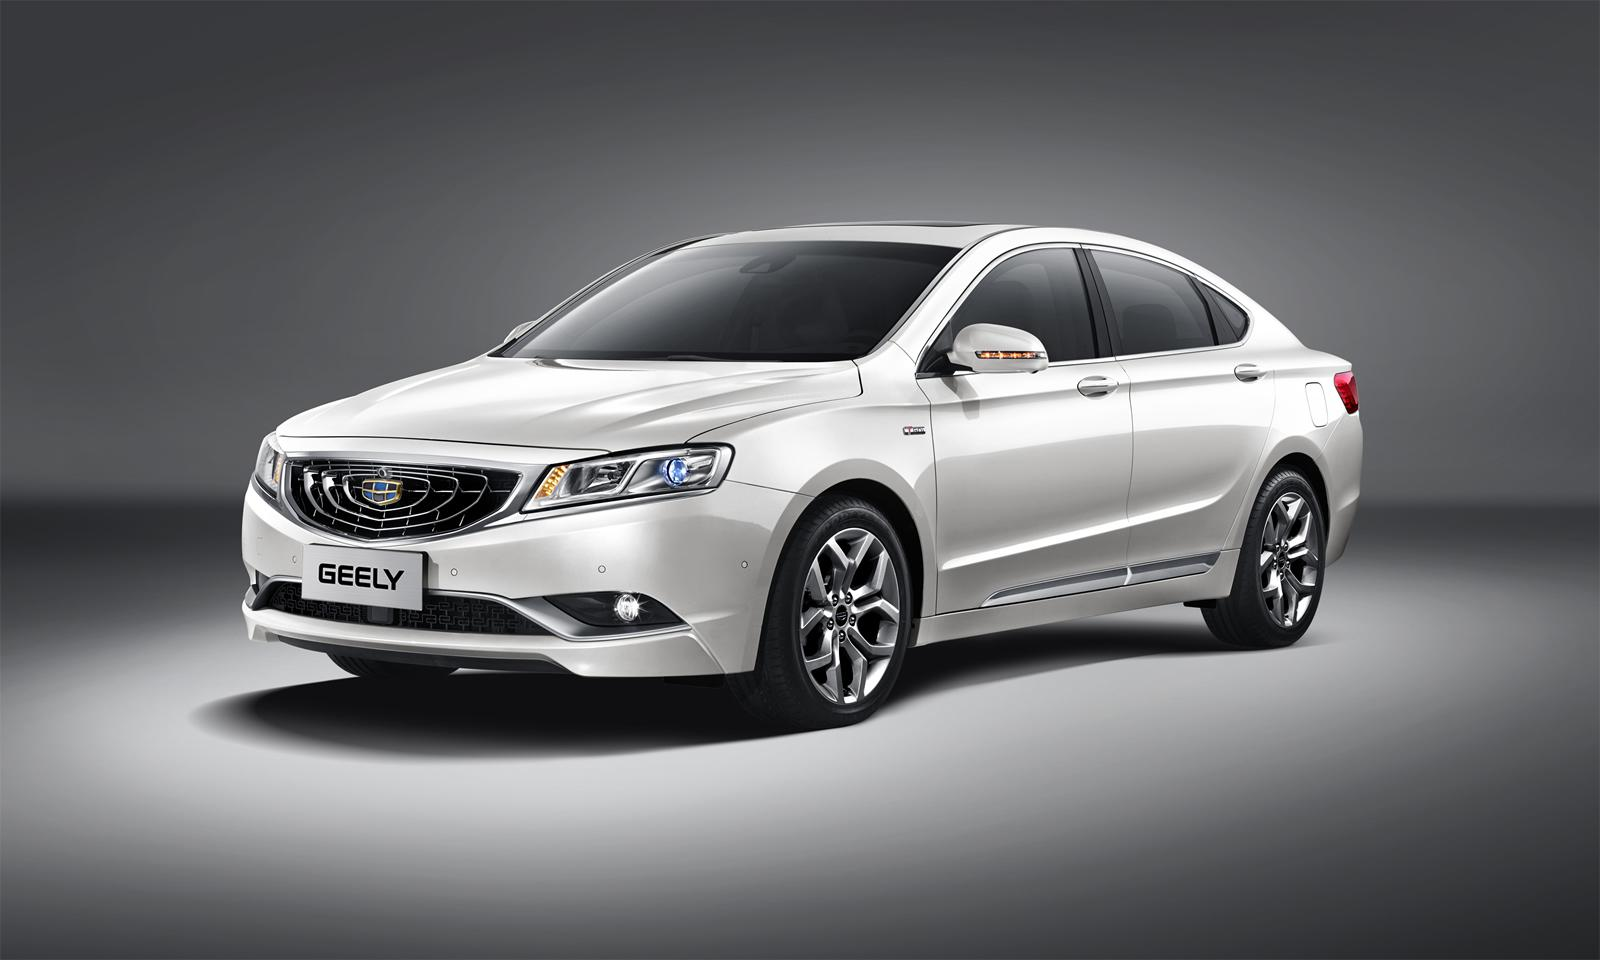 Geely Gc9 Is A Classy New Chinese Sedan Autoevolution